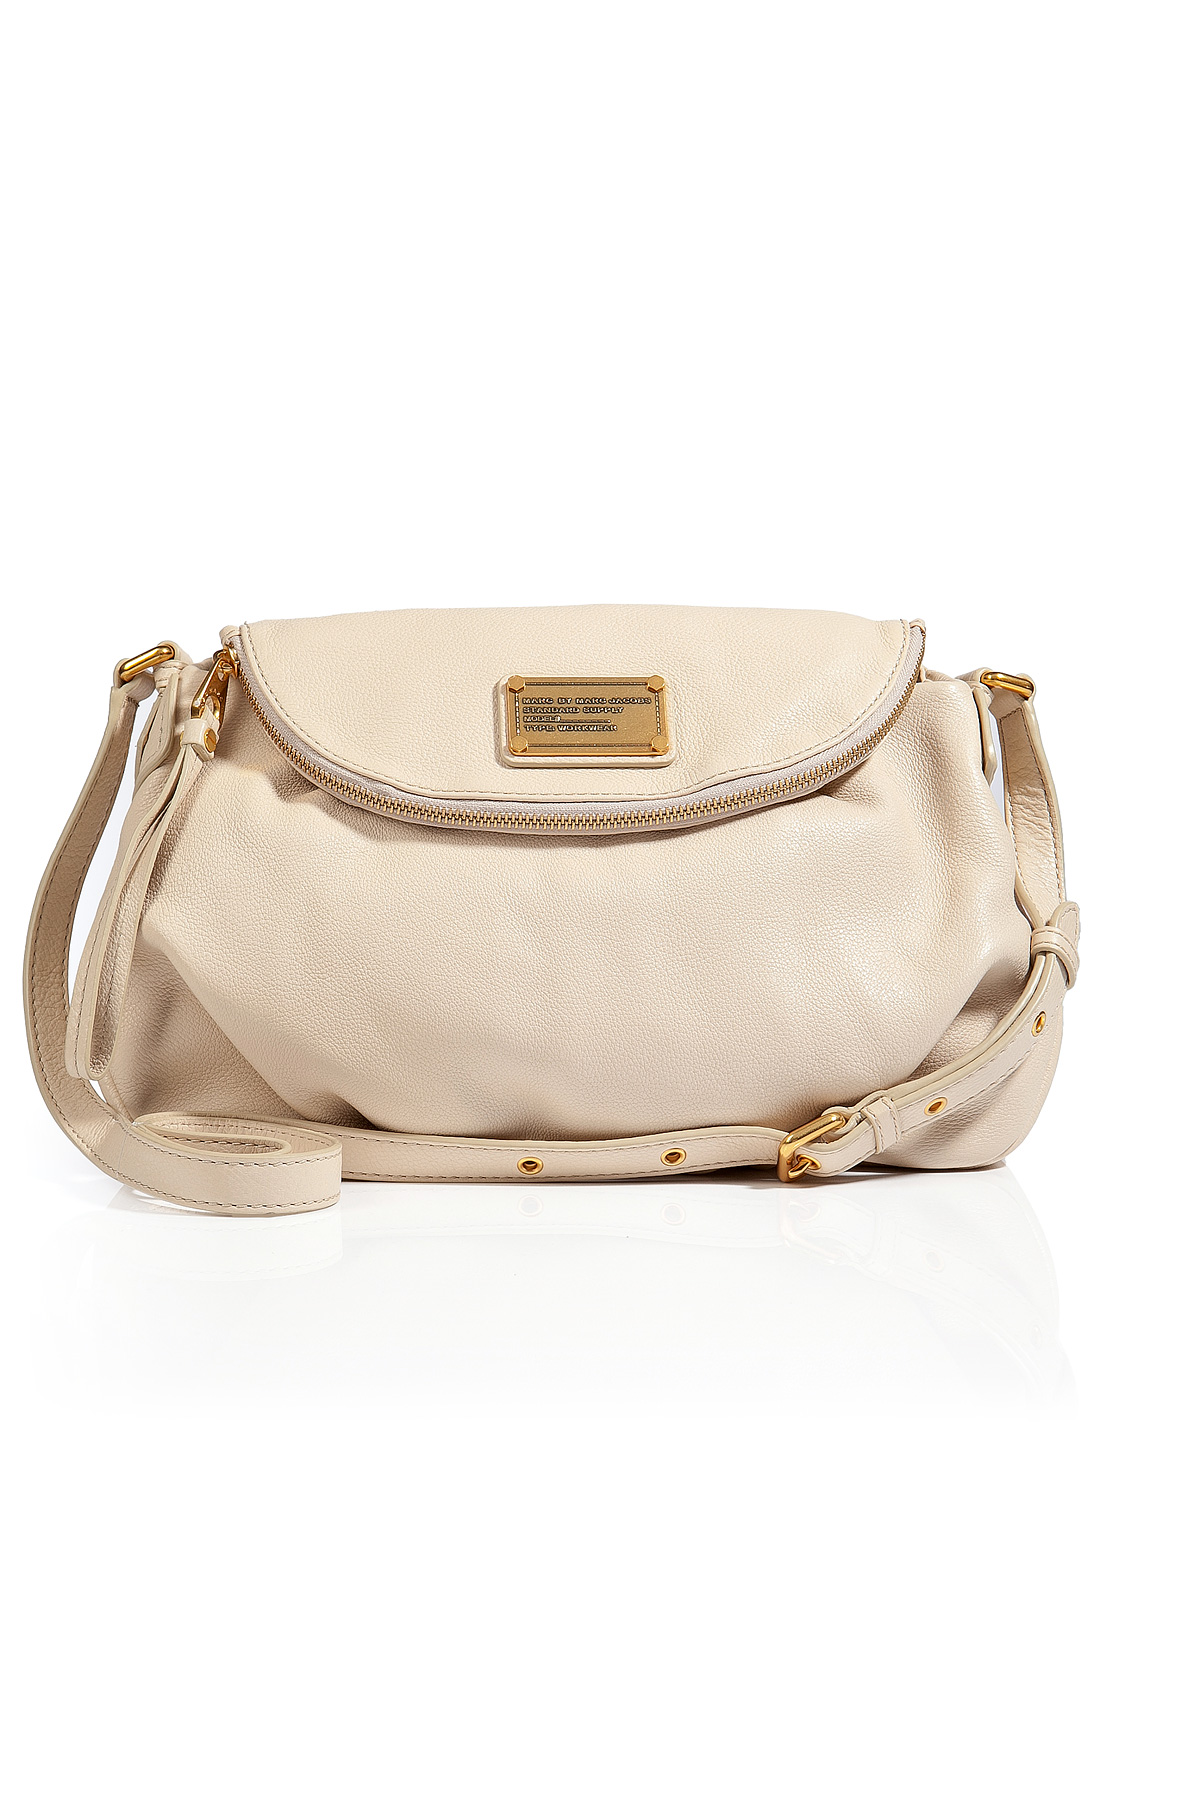 502162aff6 Lyst - Marc By Marc Jacobs Leather Natasha Bag in Stone in Natural